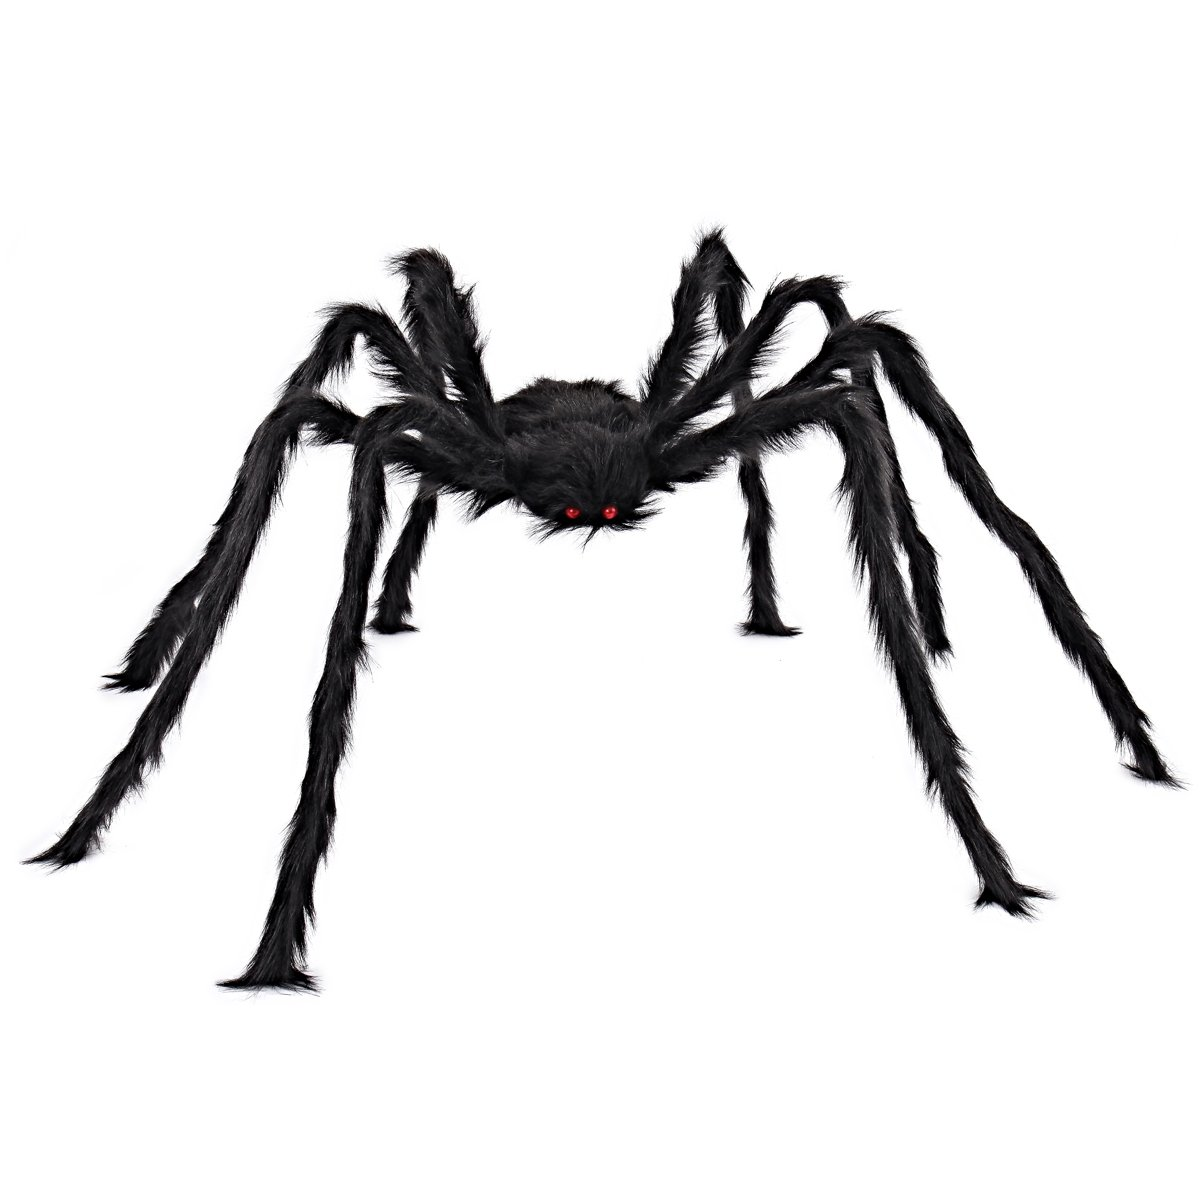 JOYIN 5 ft Huge Halloween Outdoor Decorations Hairy Spider (Black)